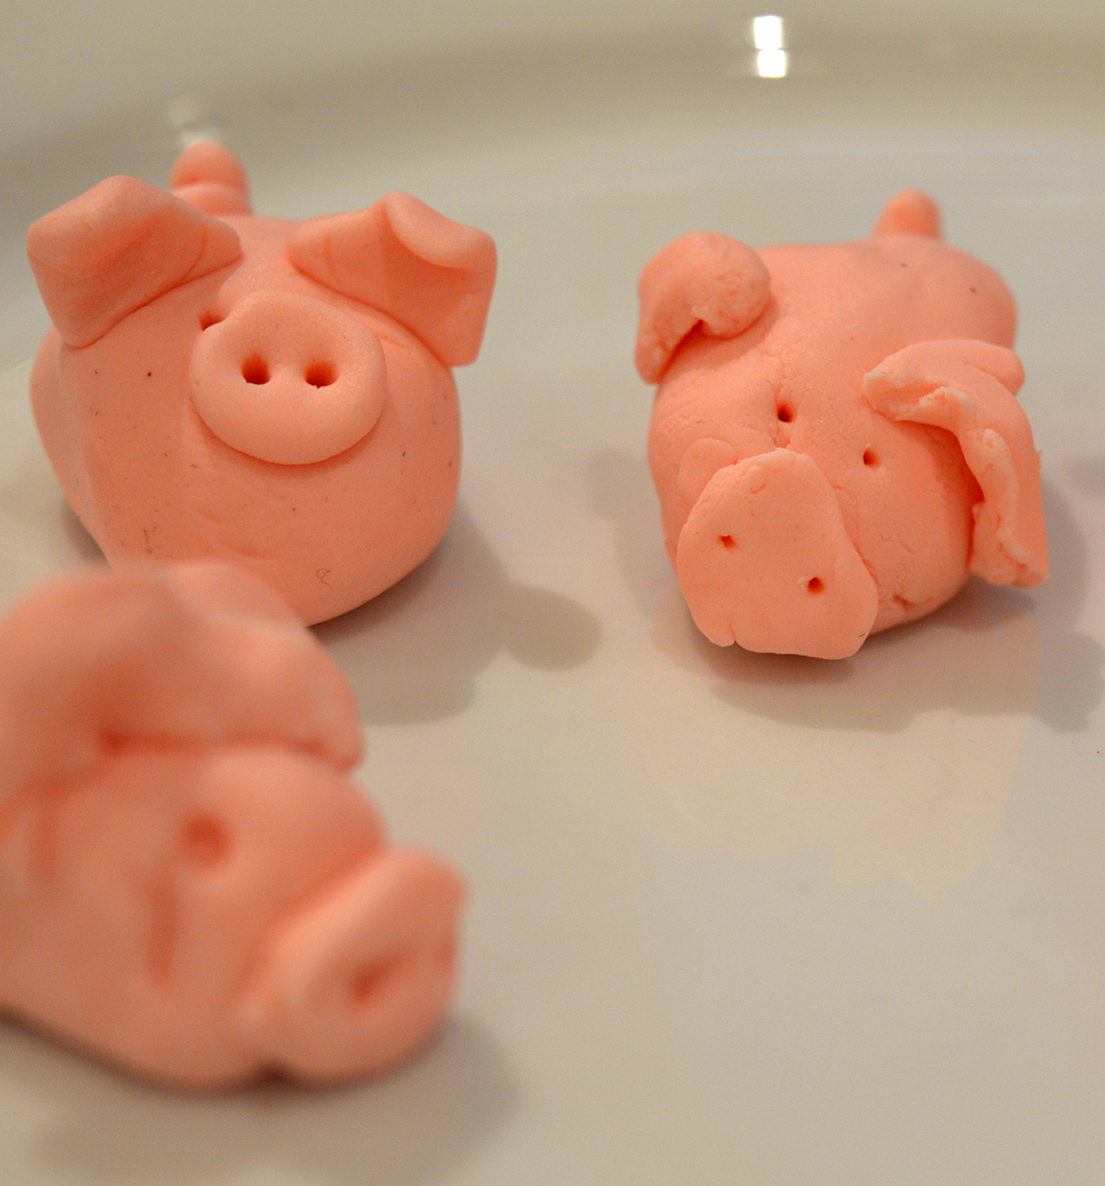 Good-luck foods for new year: Marzipan Pigs from One Third Stories